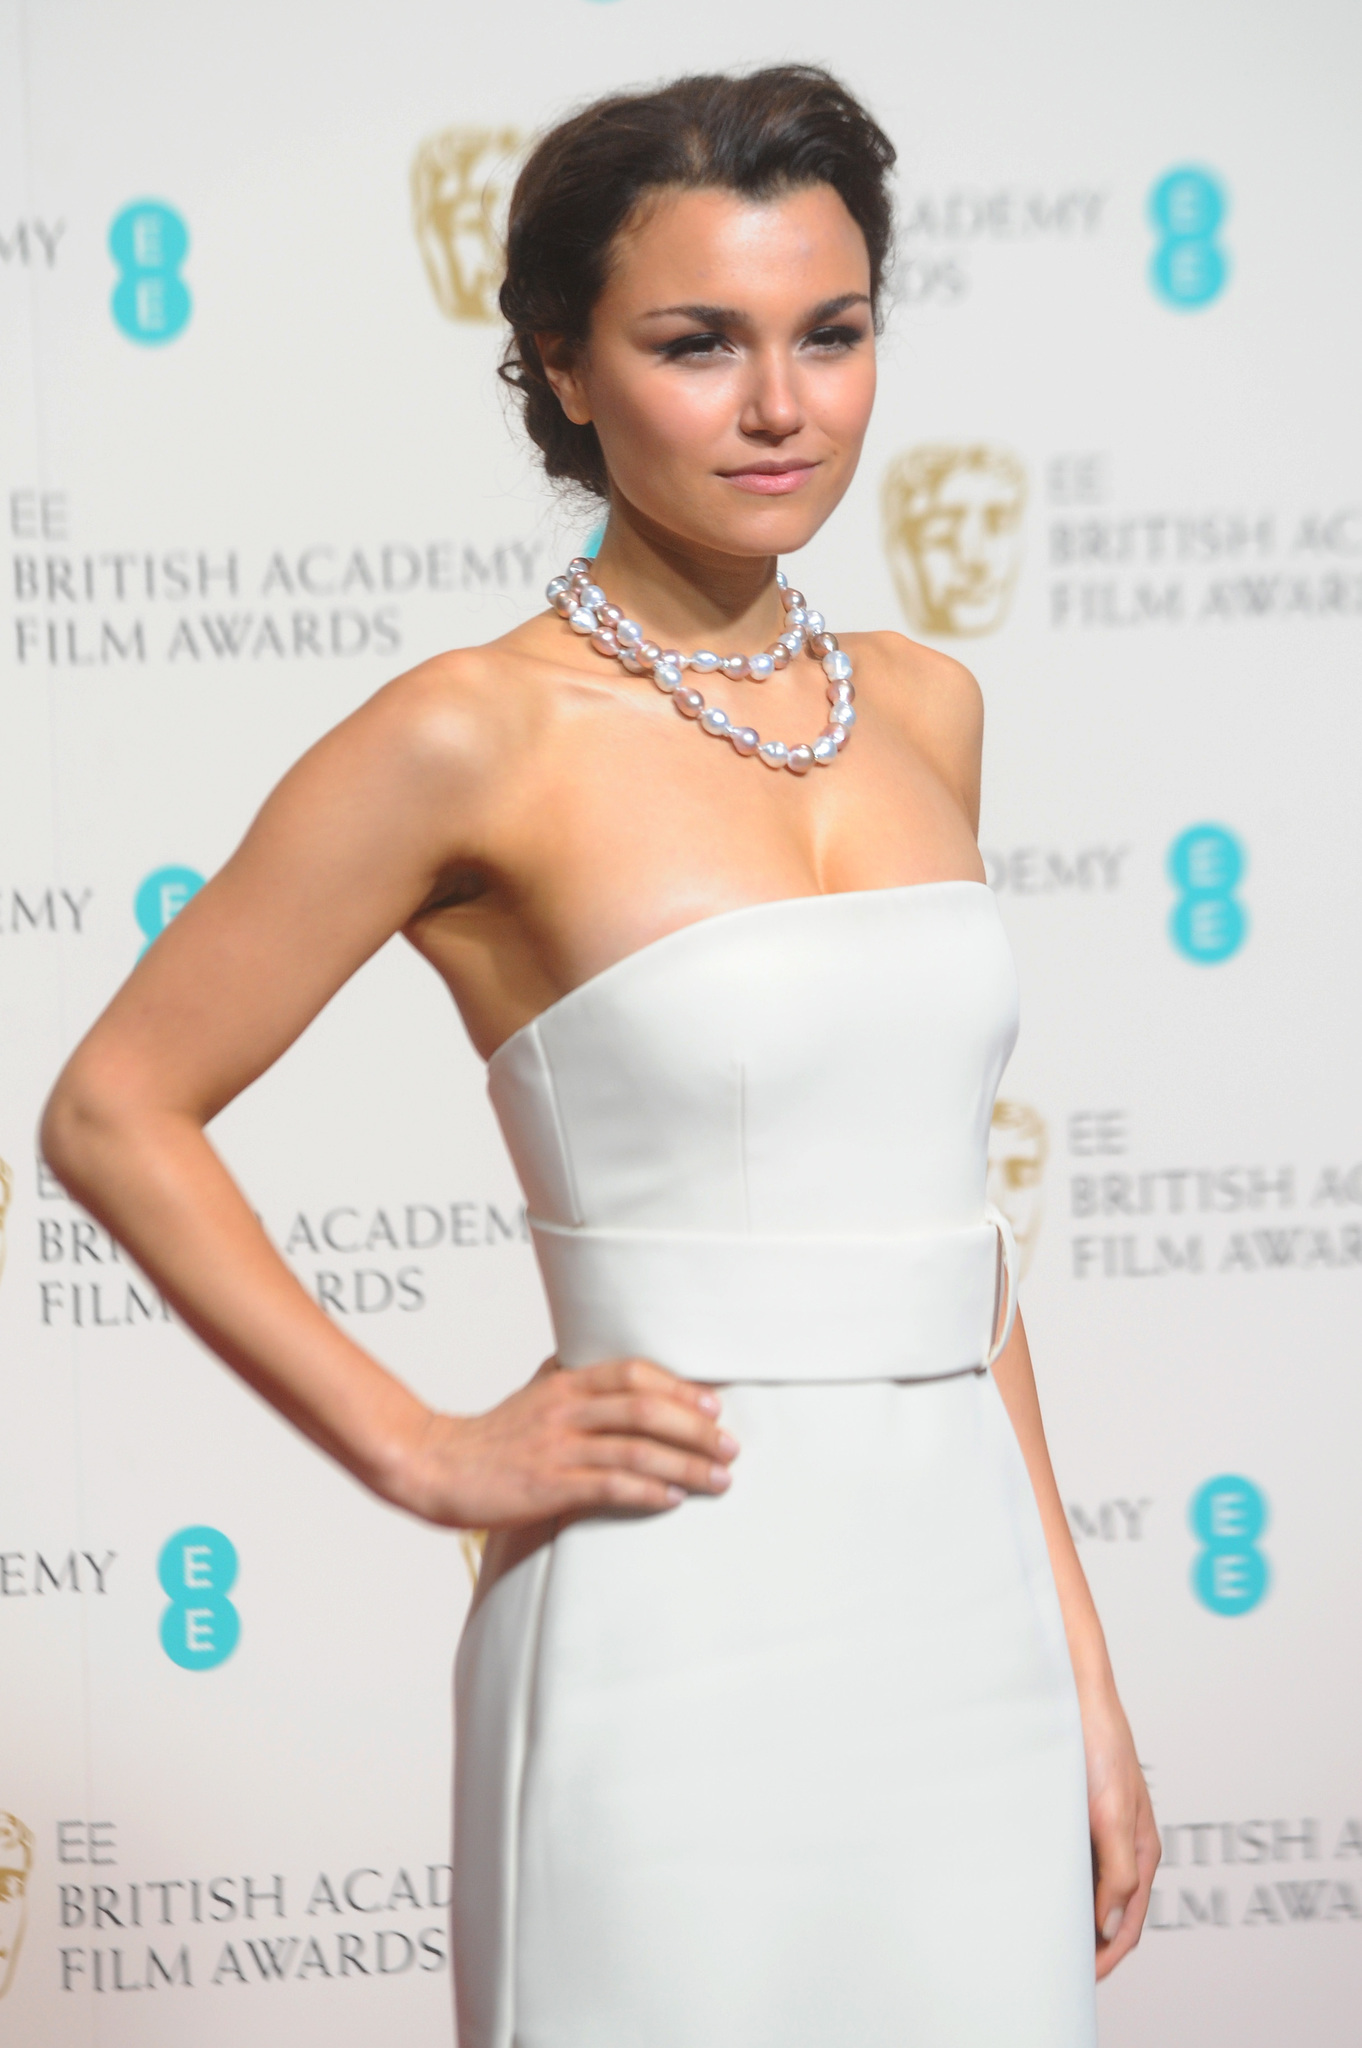 Samantha Barks (born 1990)